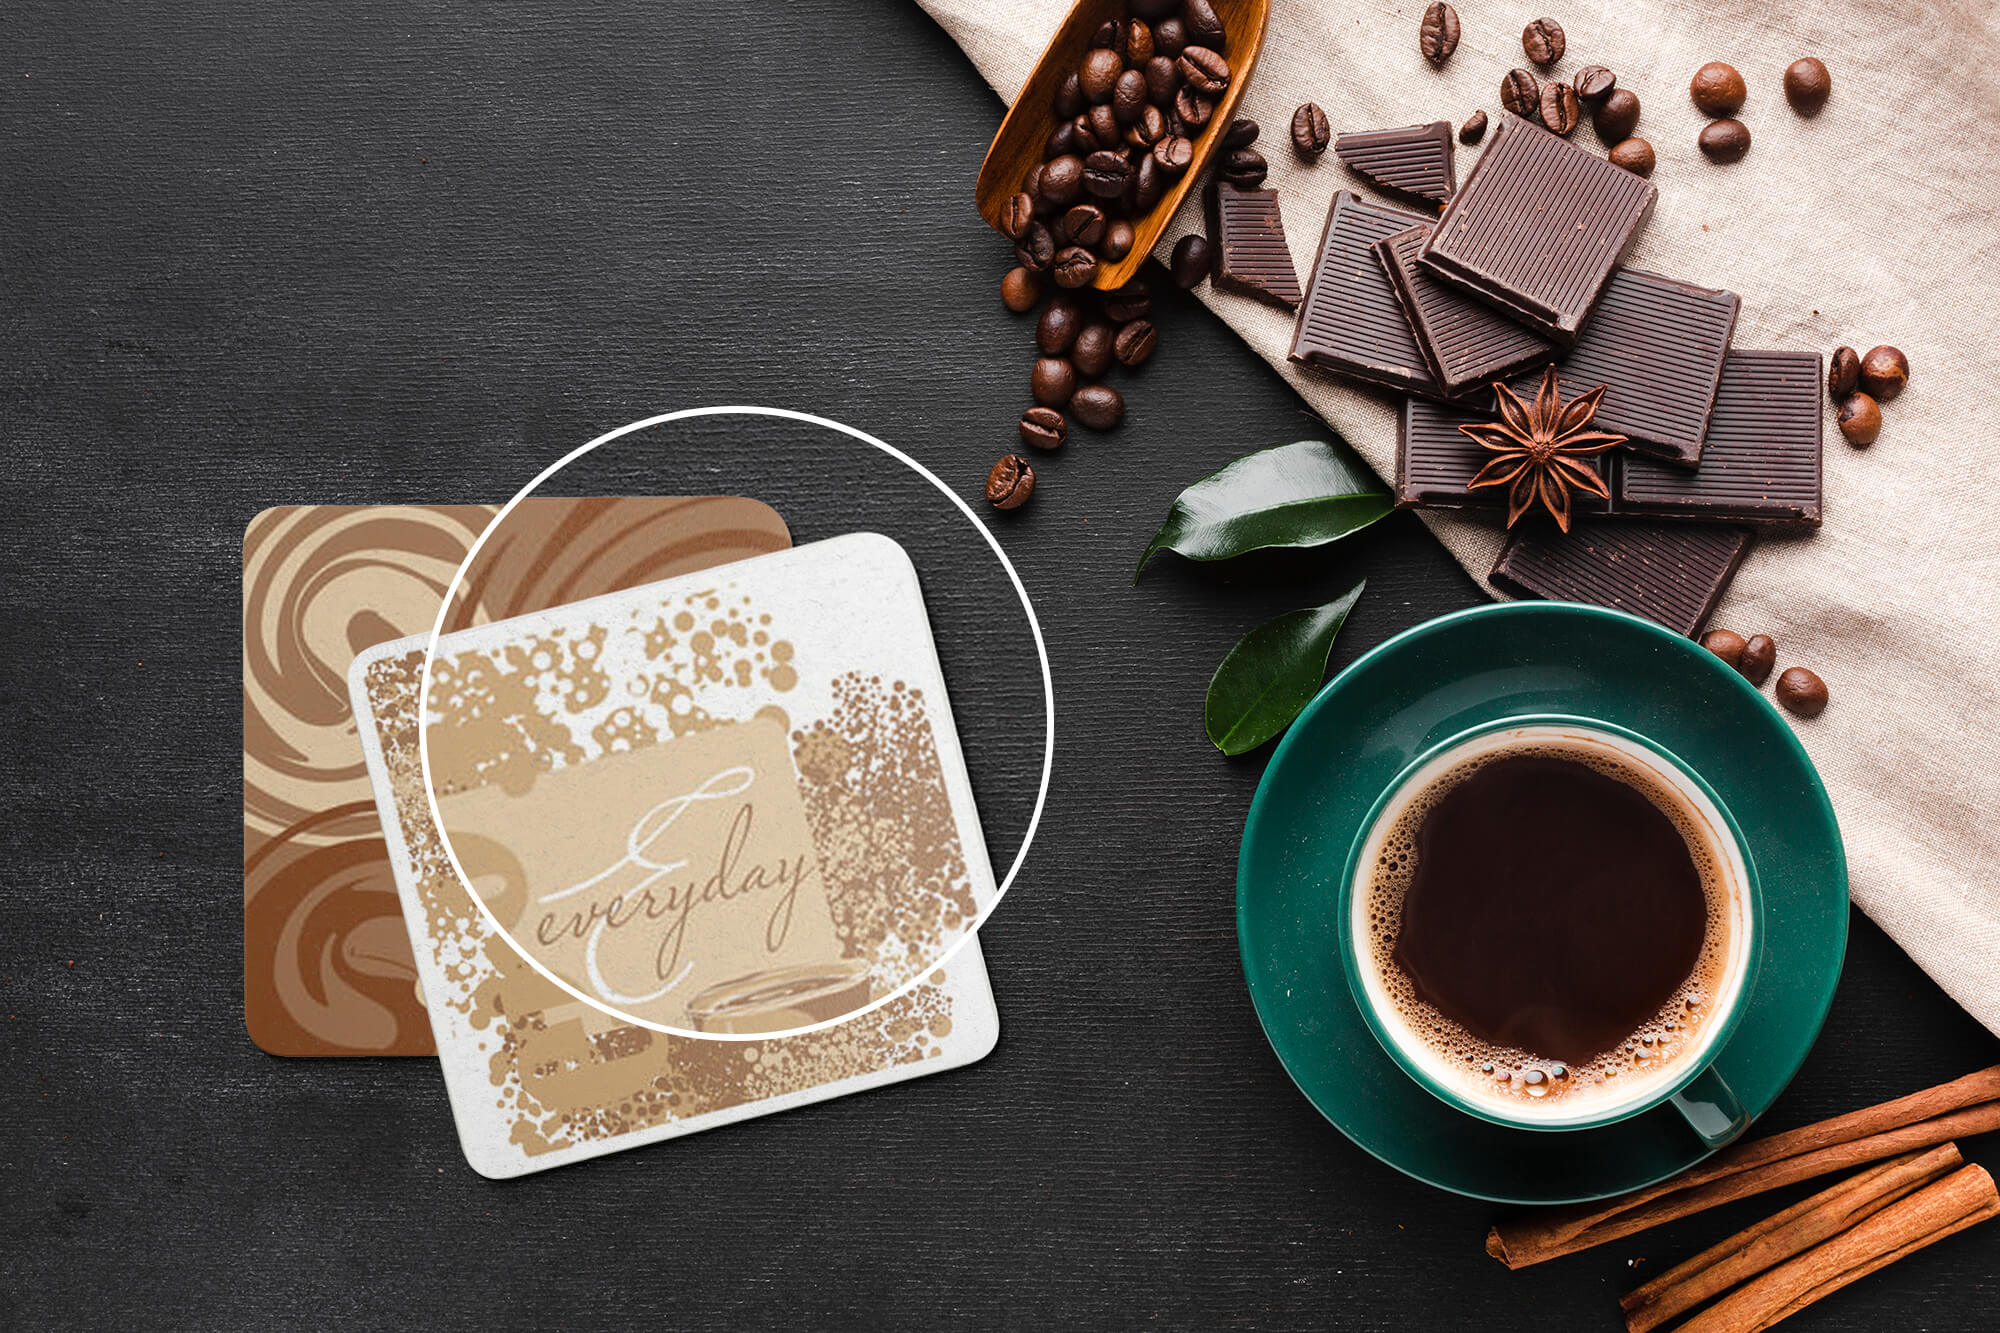 Free Drink Coaster Mockup PSD Template